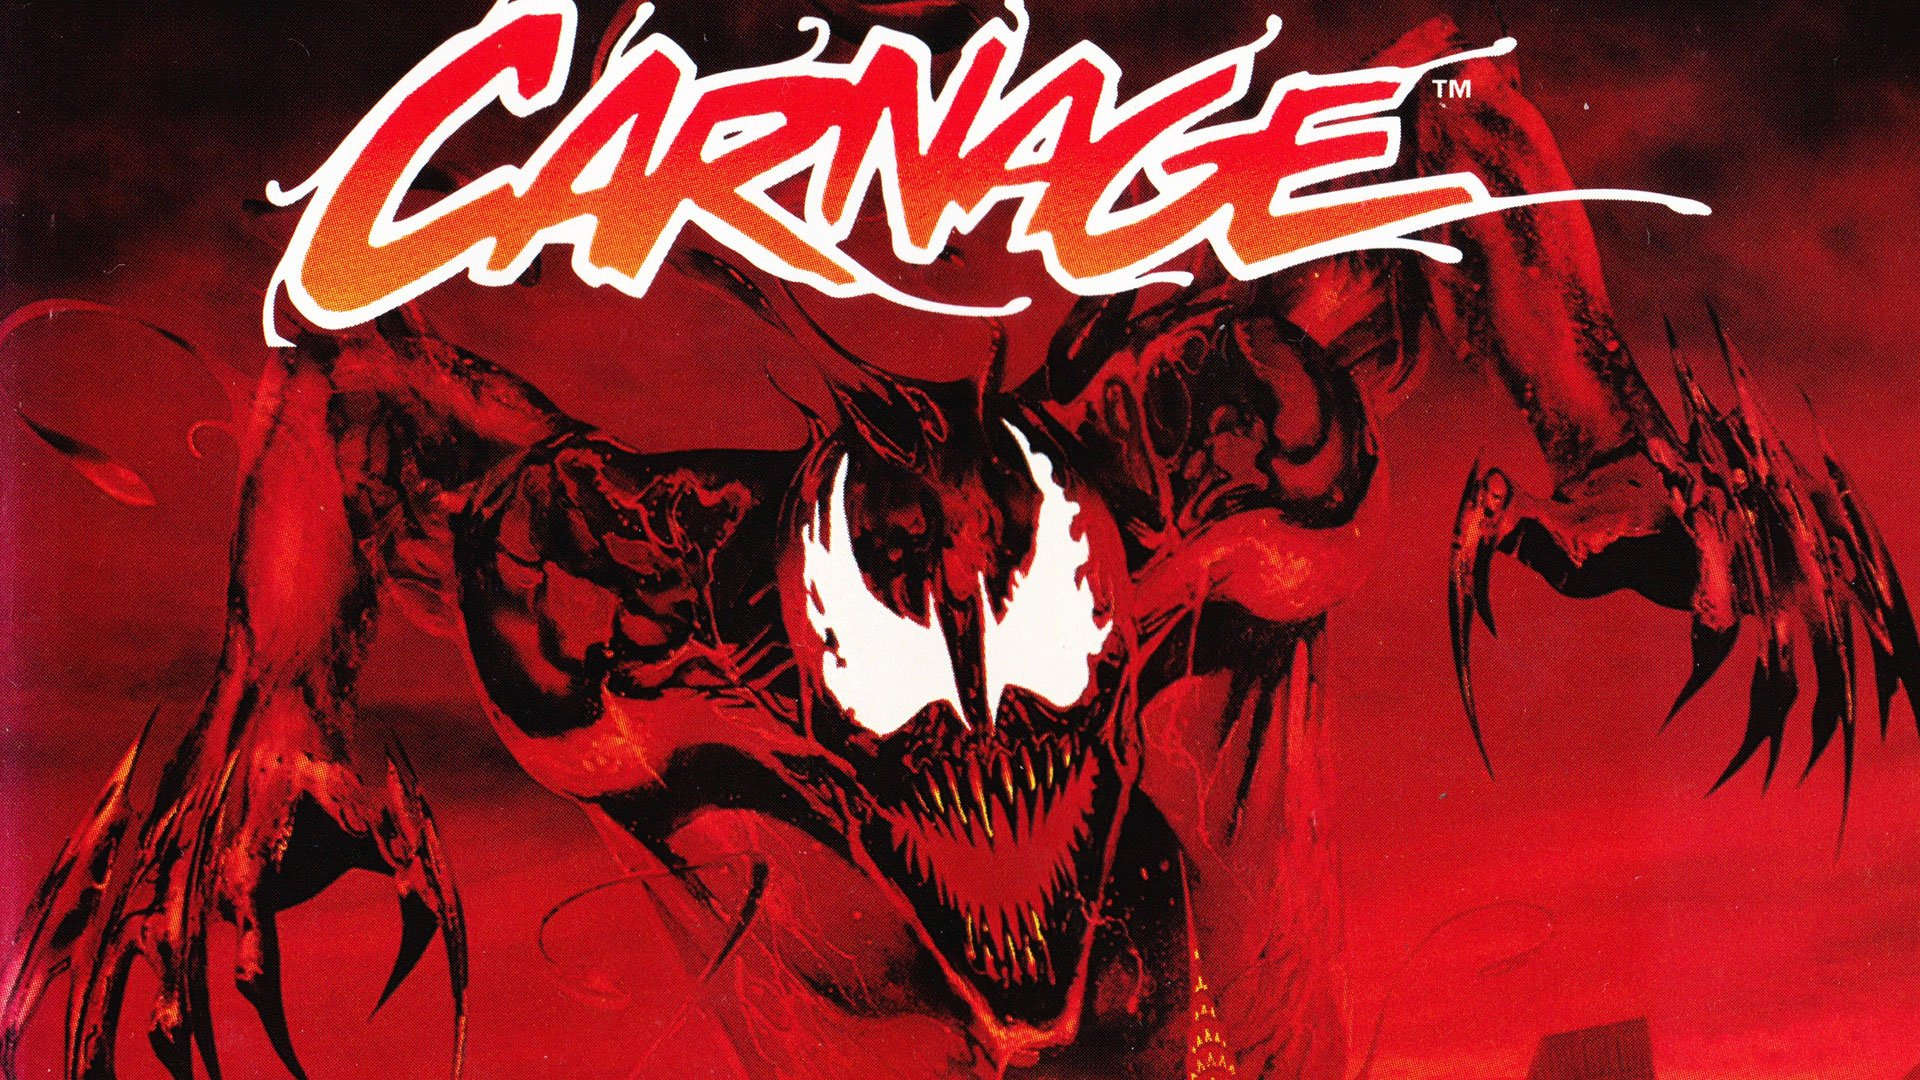 SpiderMan  Lizard And Carnage  wallpaper Movies Wallpaper: Spiderman Carnage Wallpapers Mobile for Desktop 1920x1080